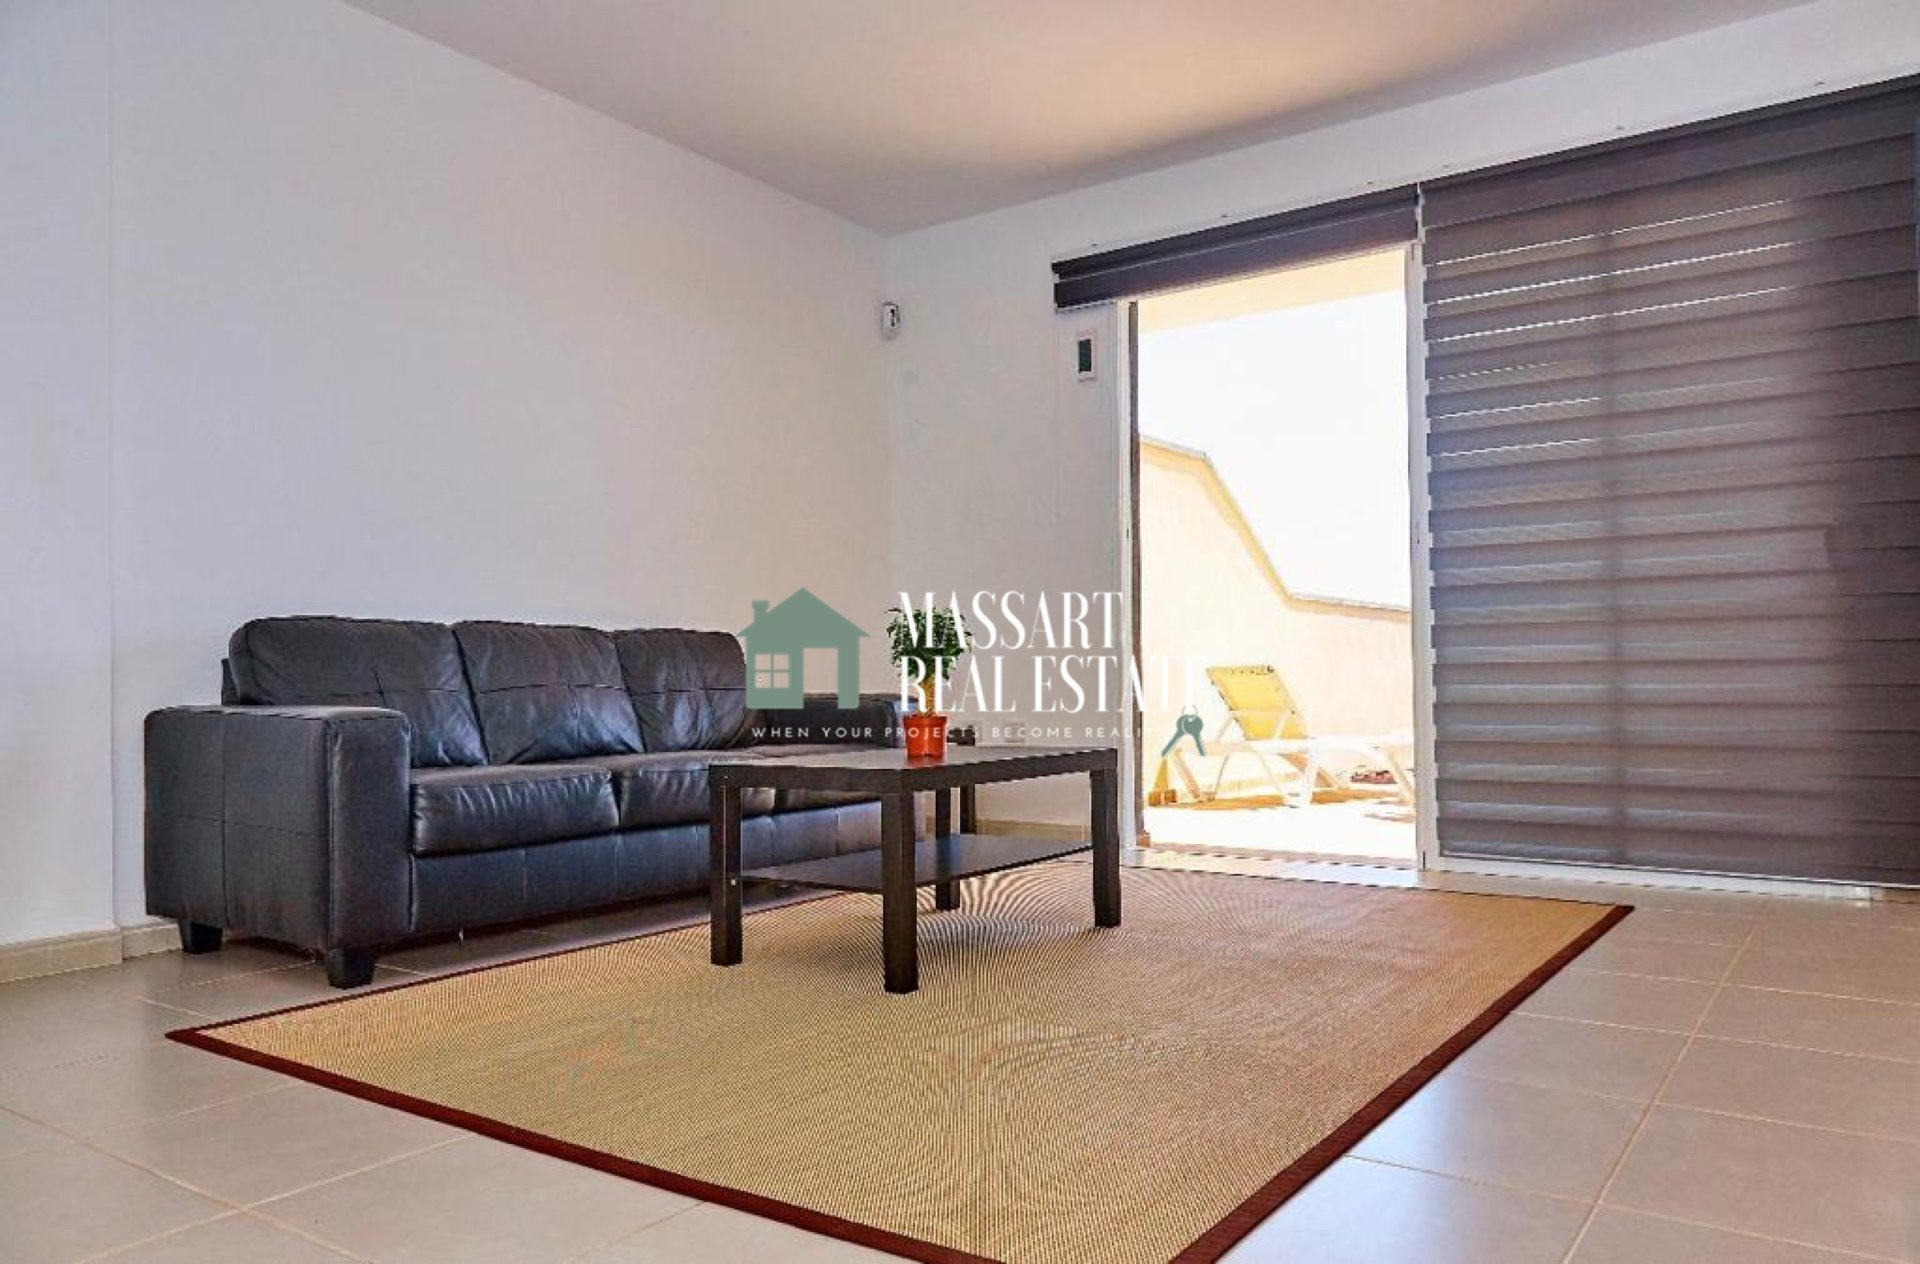 For sale in El Medano, modern townhouse on the seafront with privileged views.